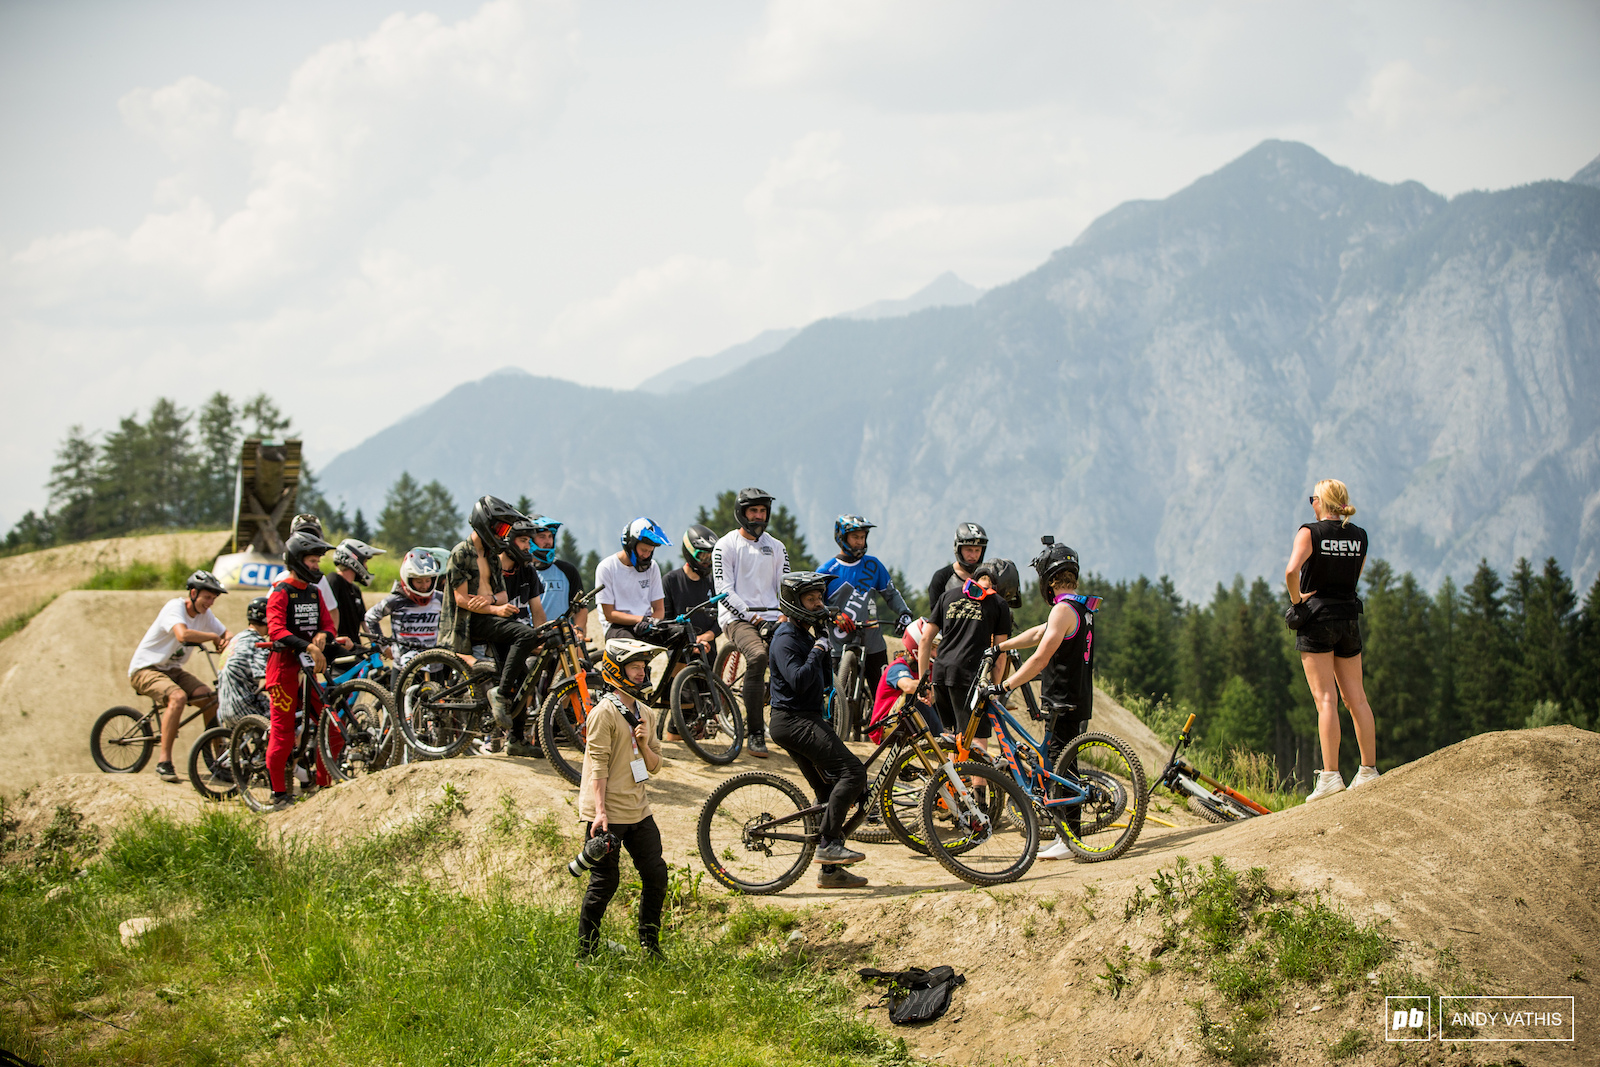 Unofficial European Scrub Offs were a go right after slopestyle.